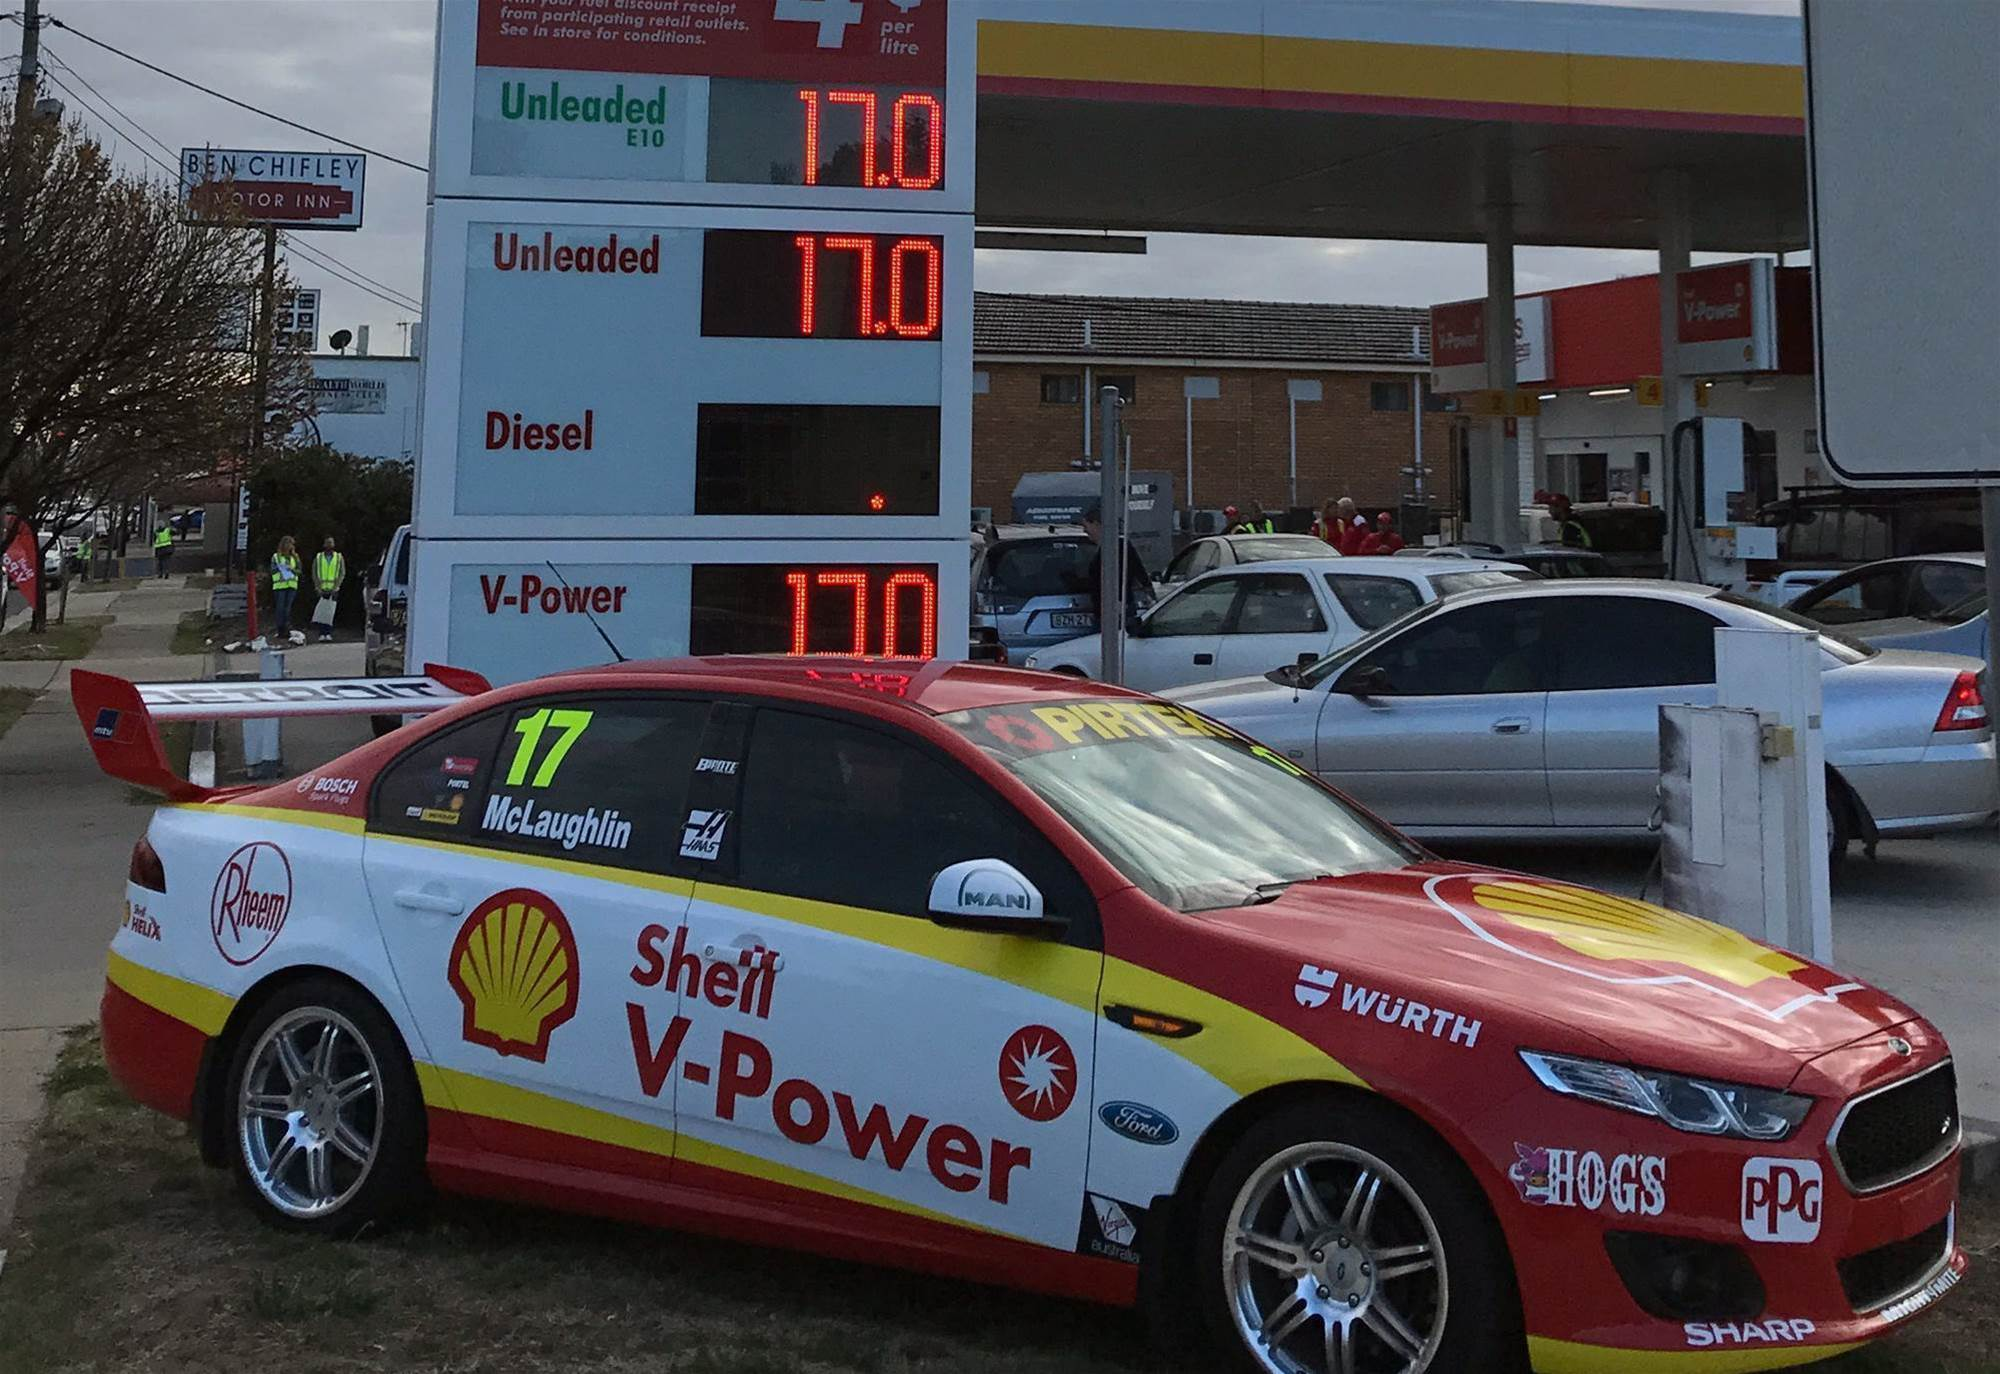 Fuel at 1967 prices as Johnson celebrates 50th year with Shell